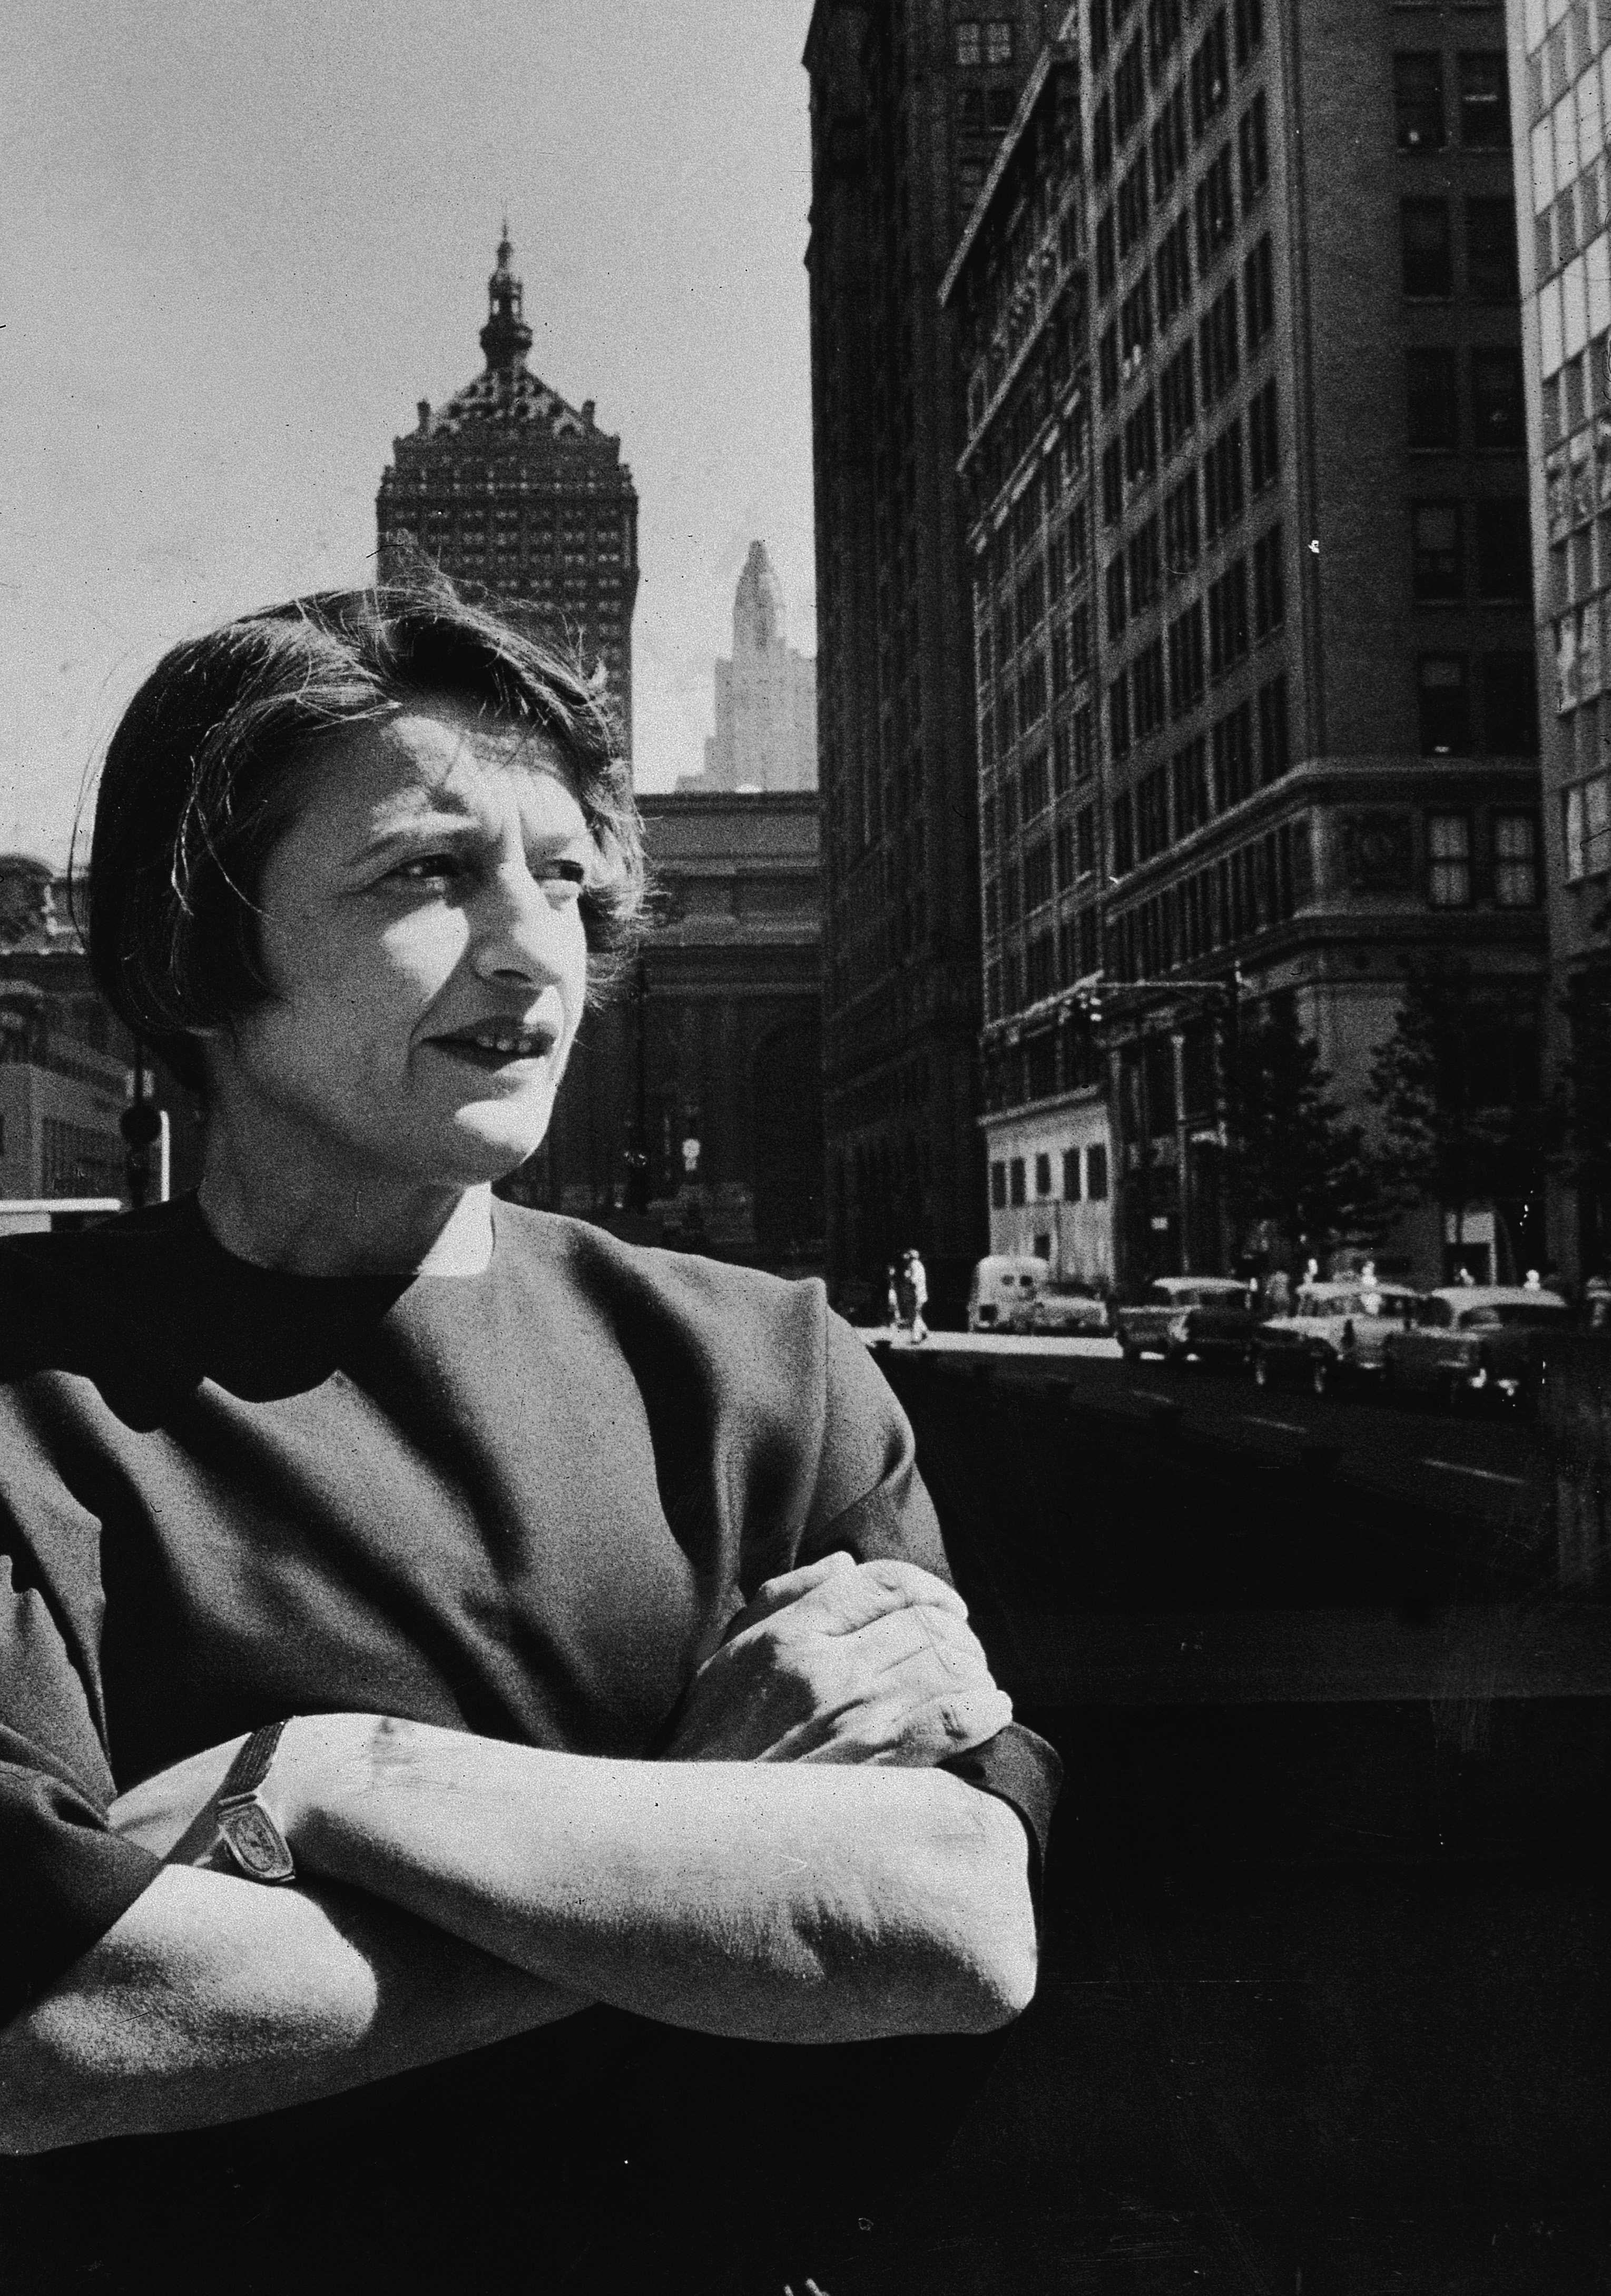 Ayn Rand stands with her arms folded on a street in New York City in 1957.